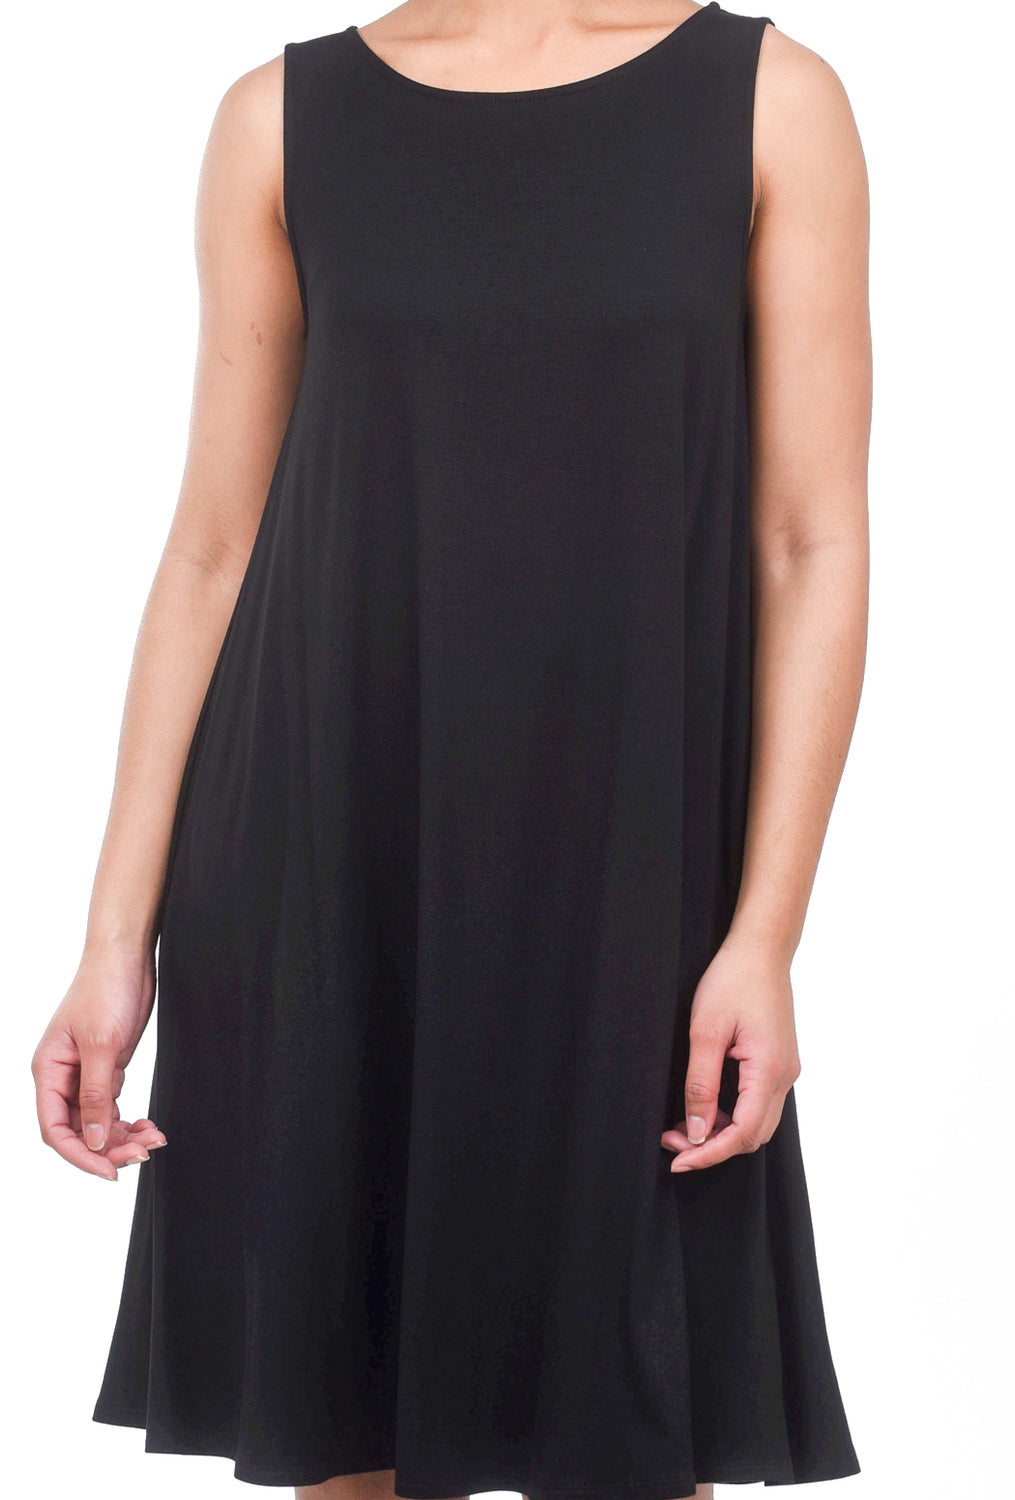 Comfy USA Claudia Dress, Black